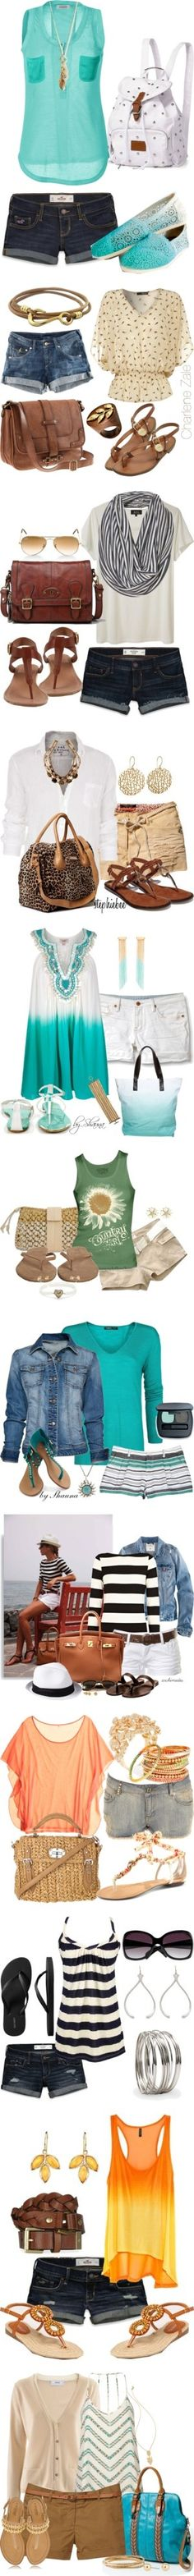 Clothes Outift for • teens • movies • girls • women •. ... | elfsacks